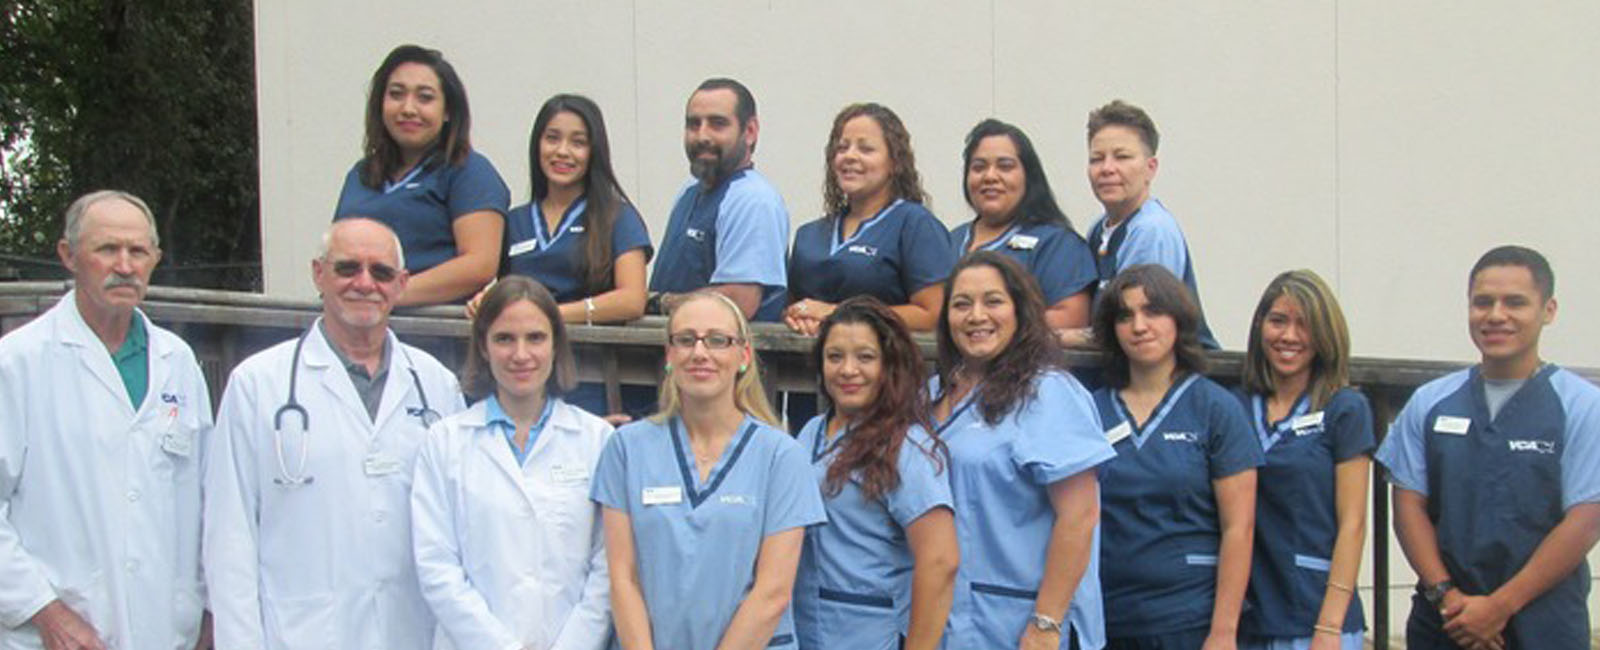 Homepage Team Picture of VCA Mission Animal Hospital